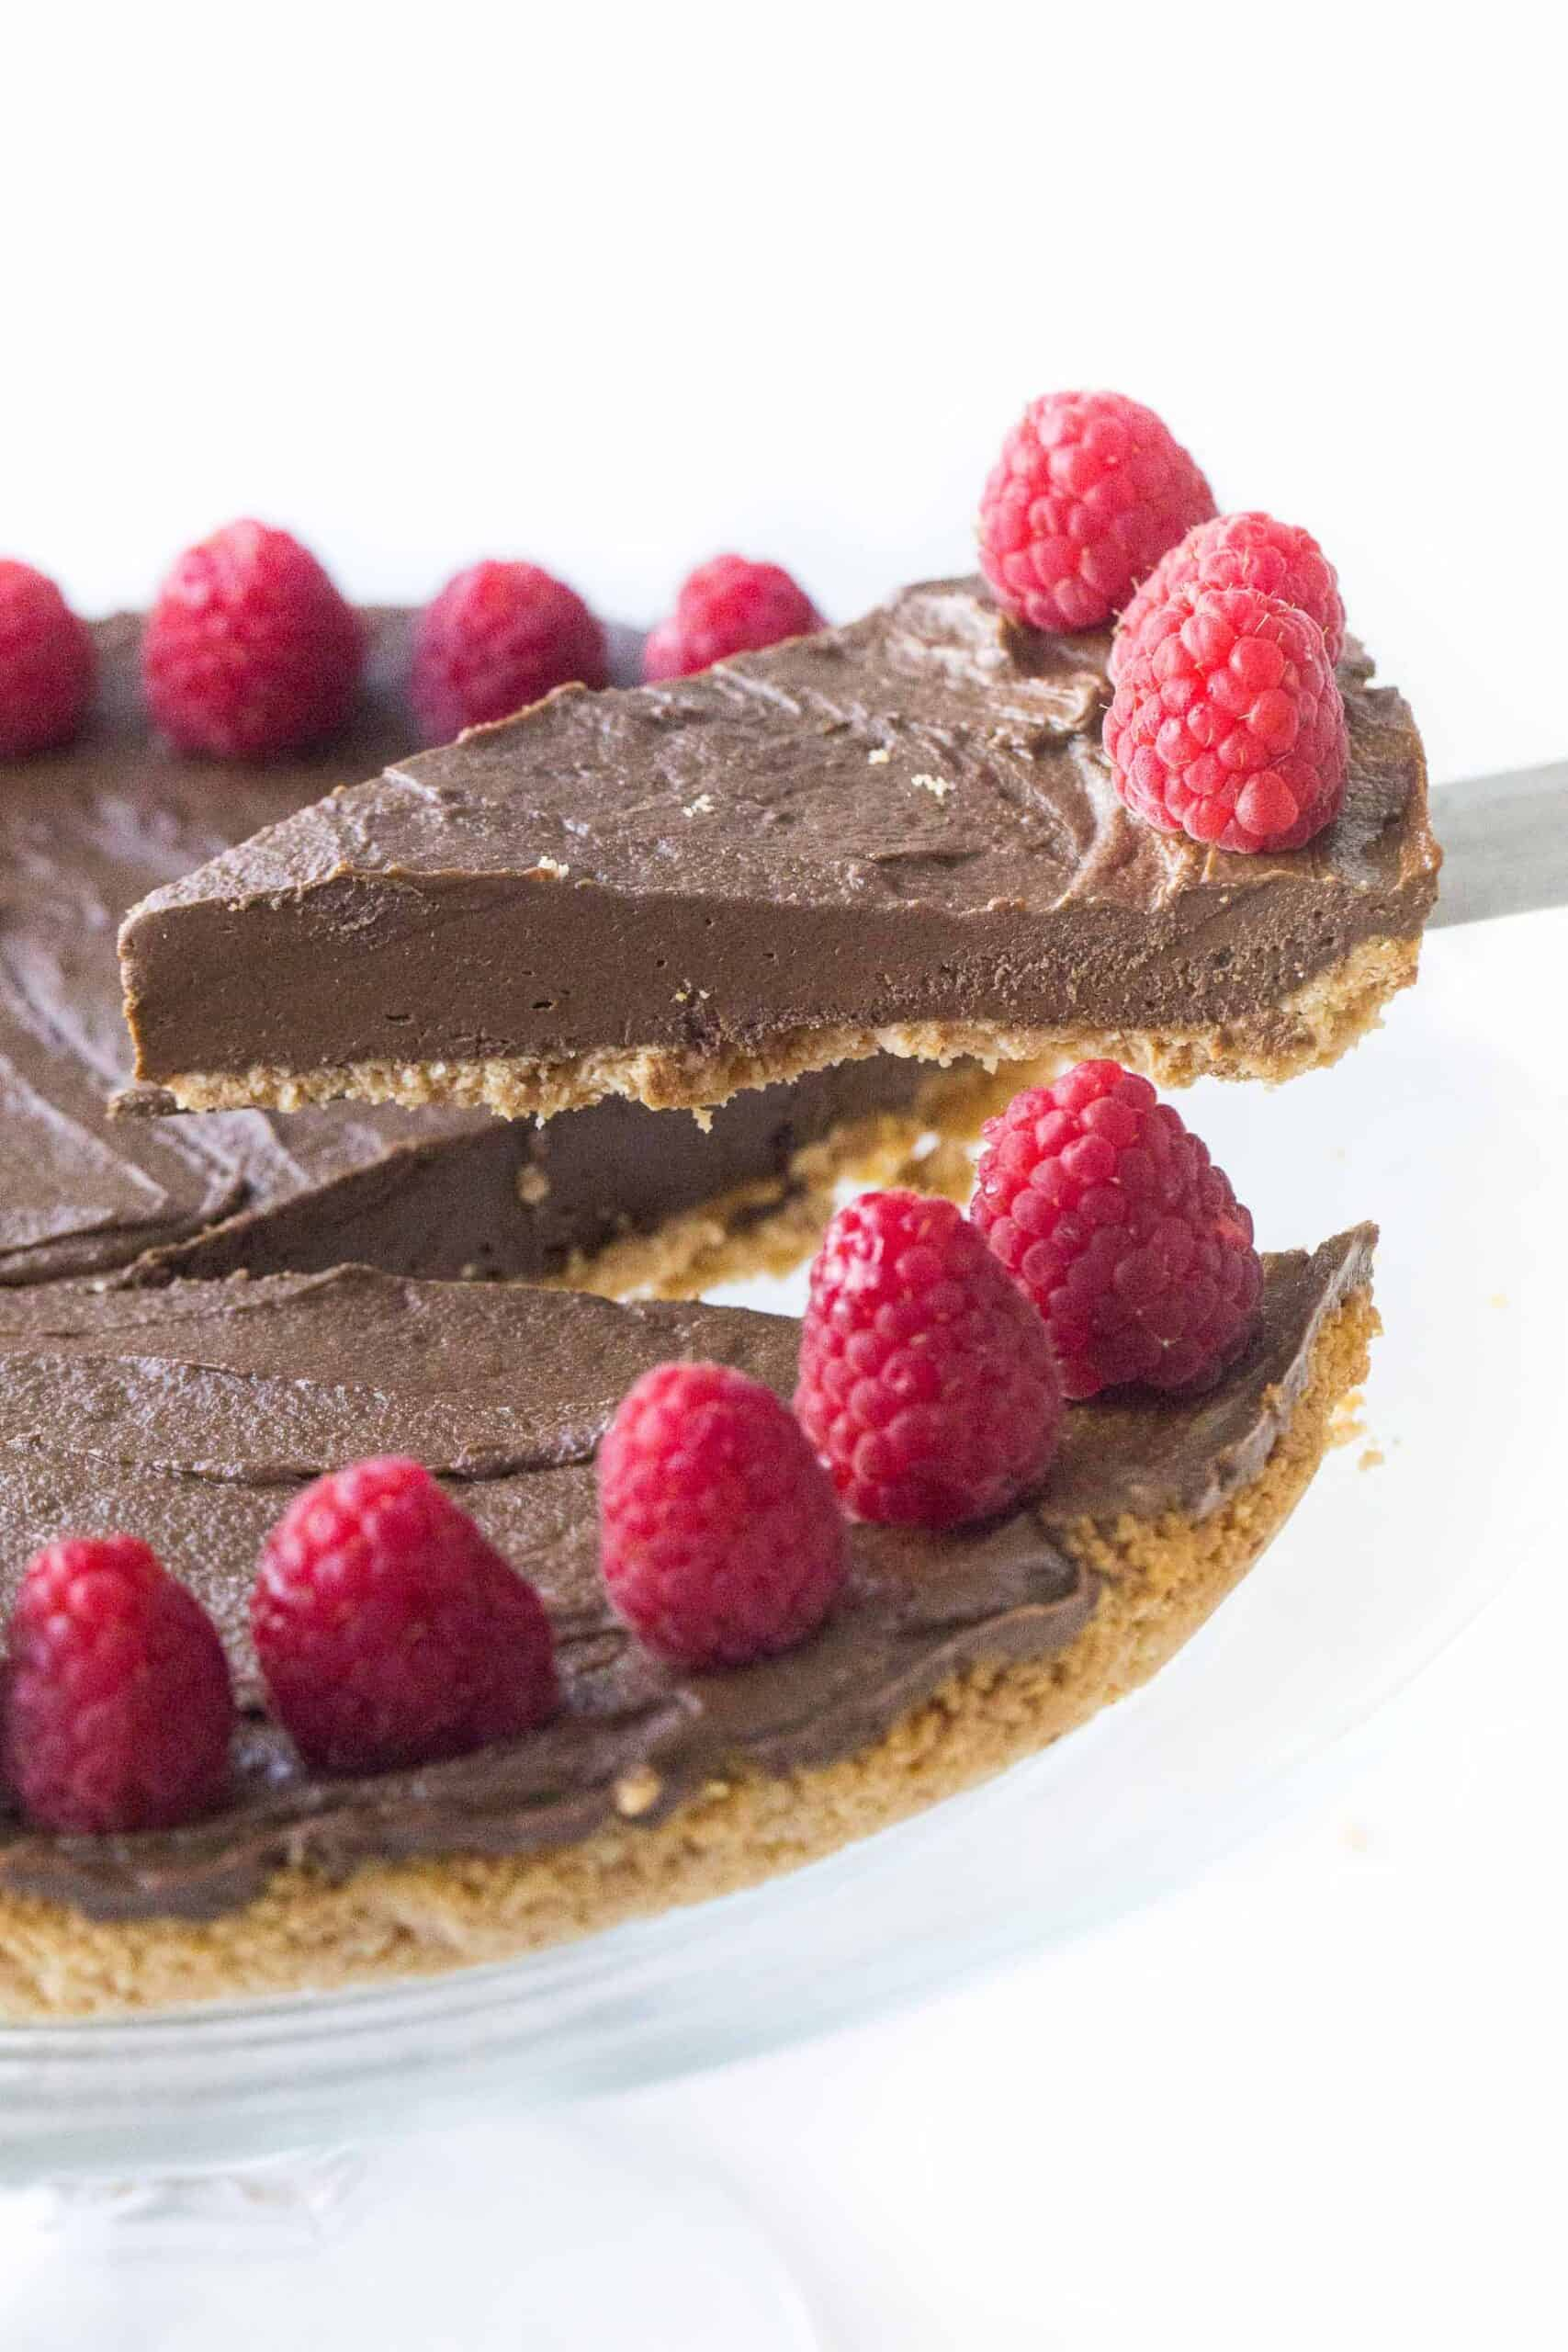 lifting a slice of healthy chocolate tart with raspberries